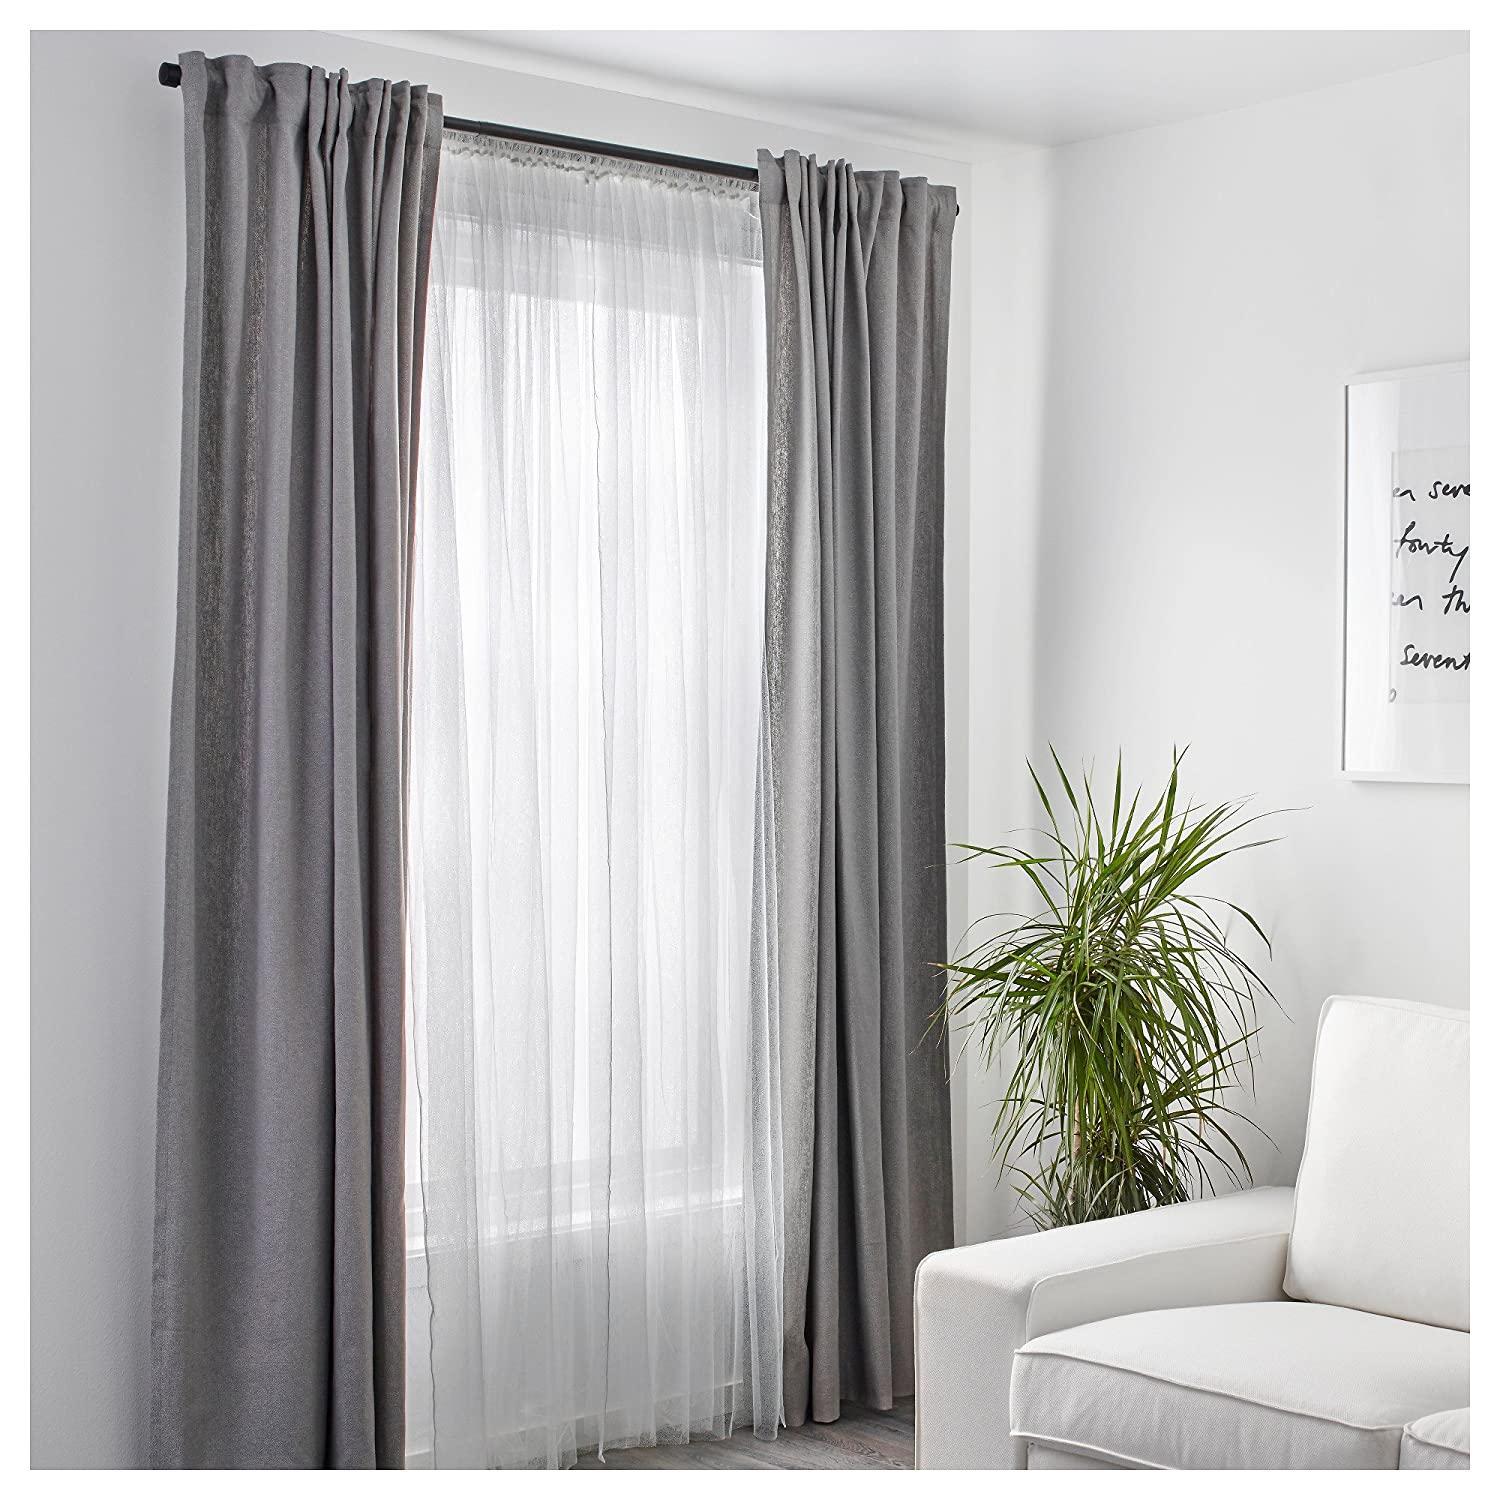 /Network Curtains Pair Ikea LILL/ White